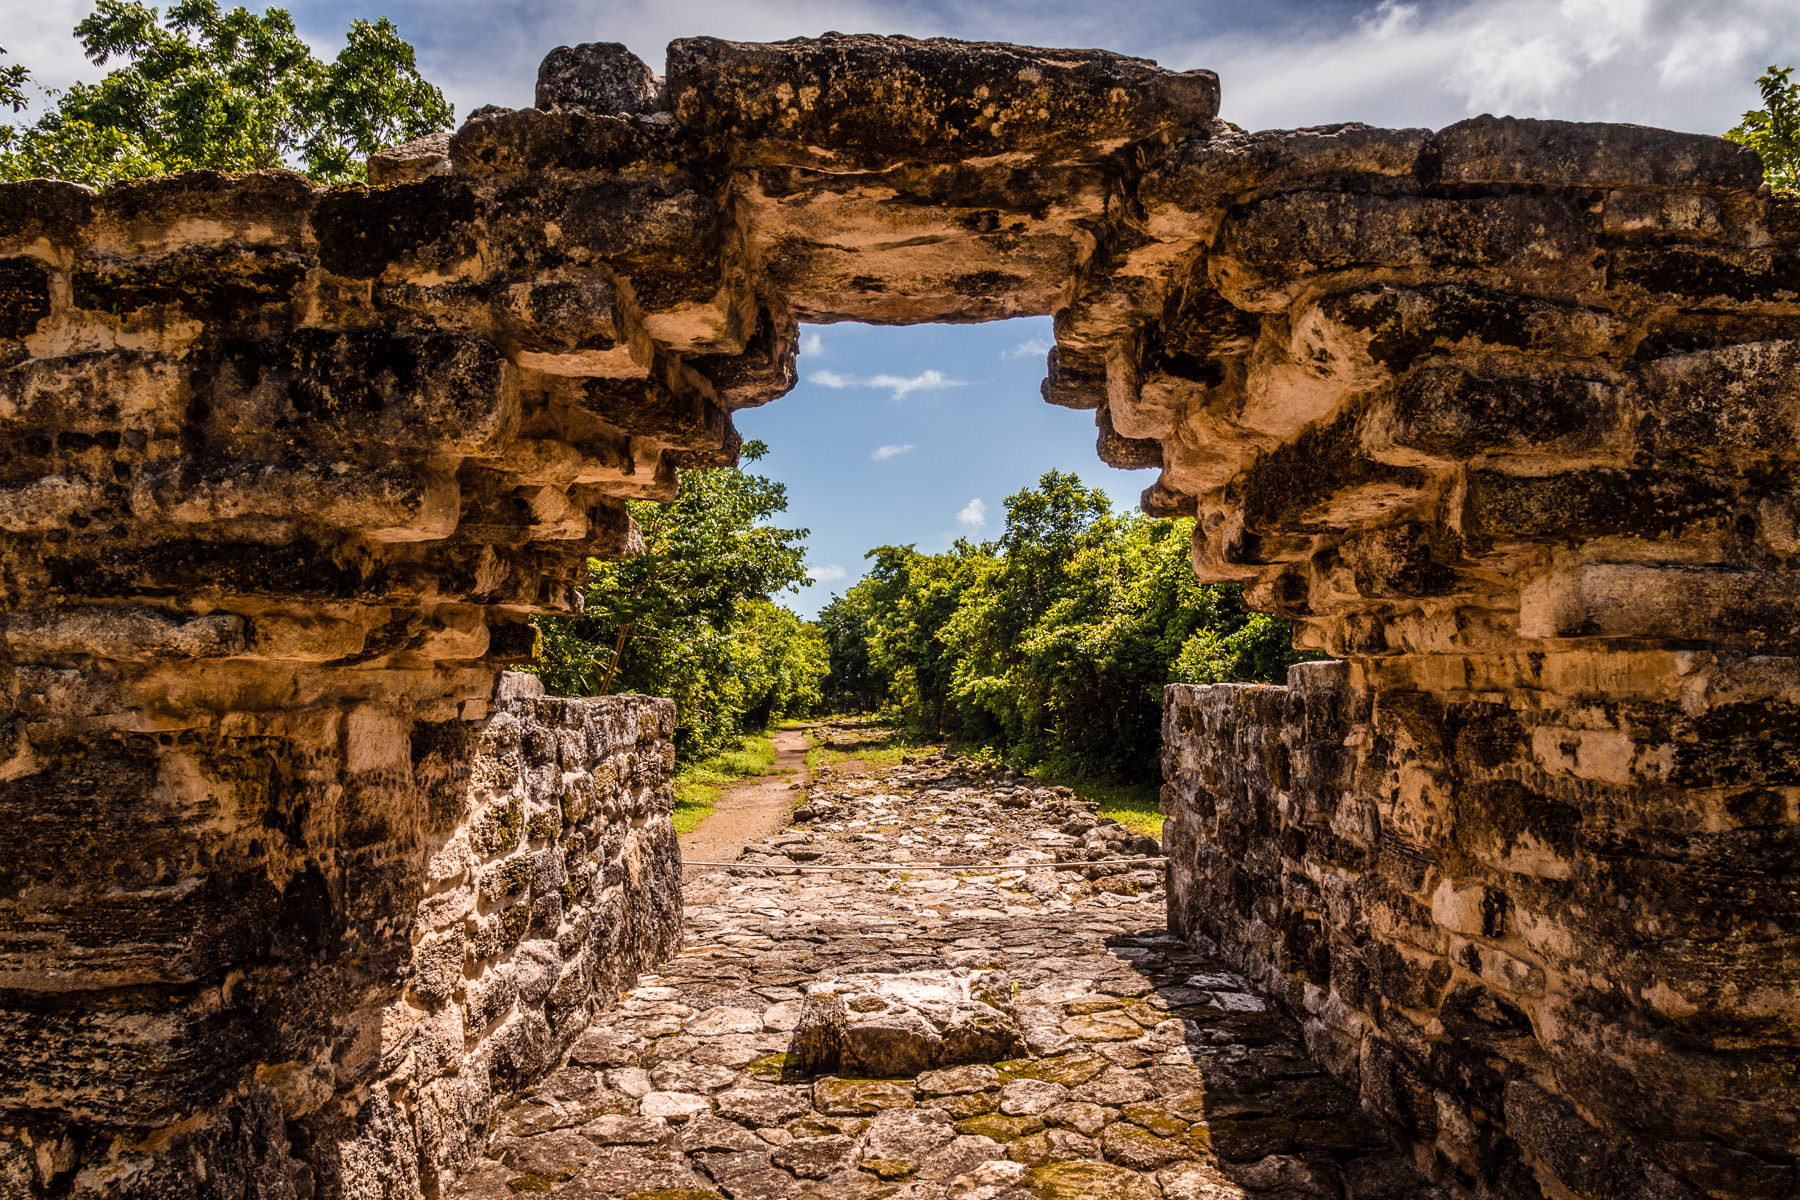 A stone arch at the pre-Columbian Mayan ruins site at San Gervasio, Cozumel, Mexico.